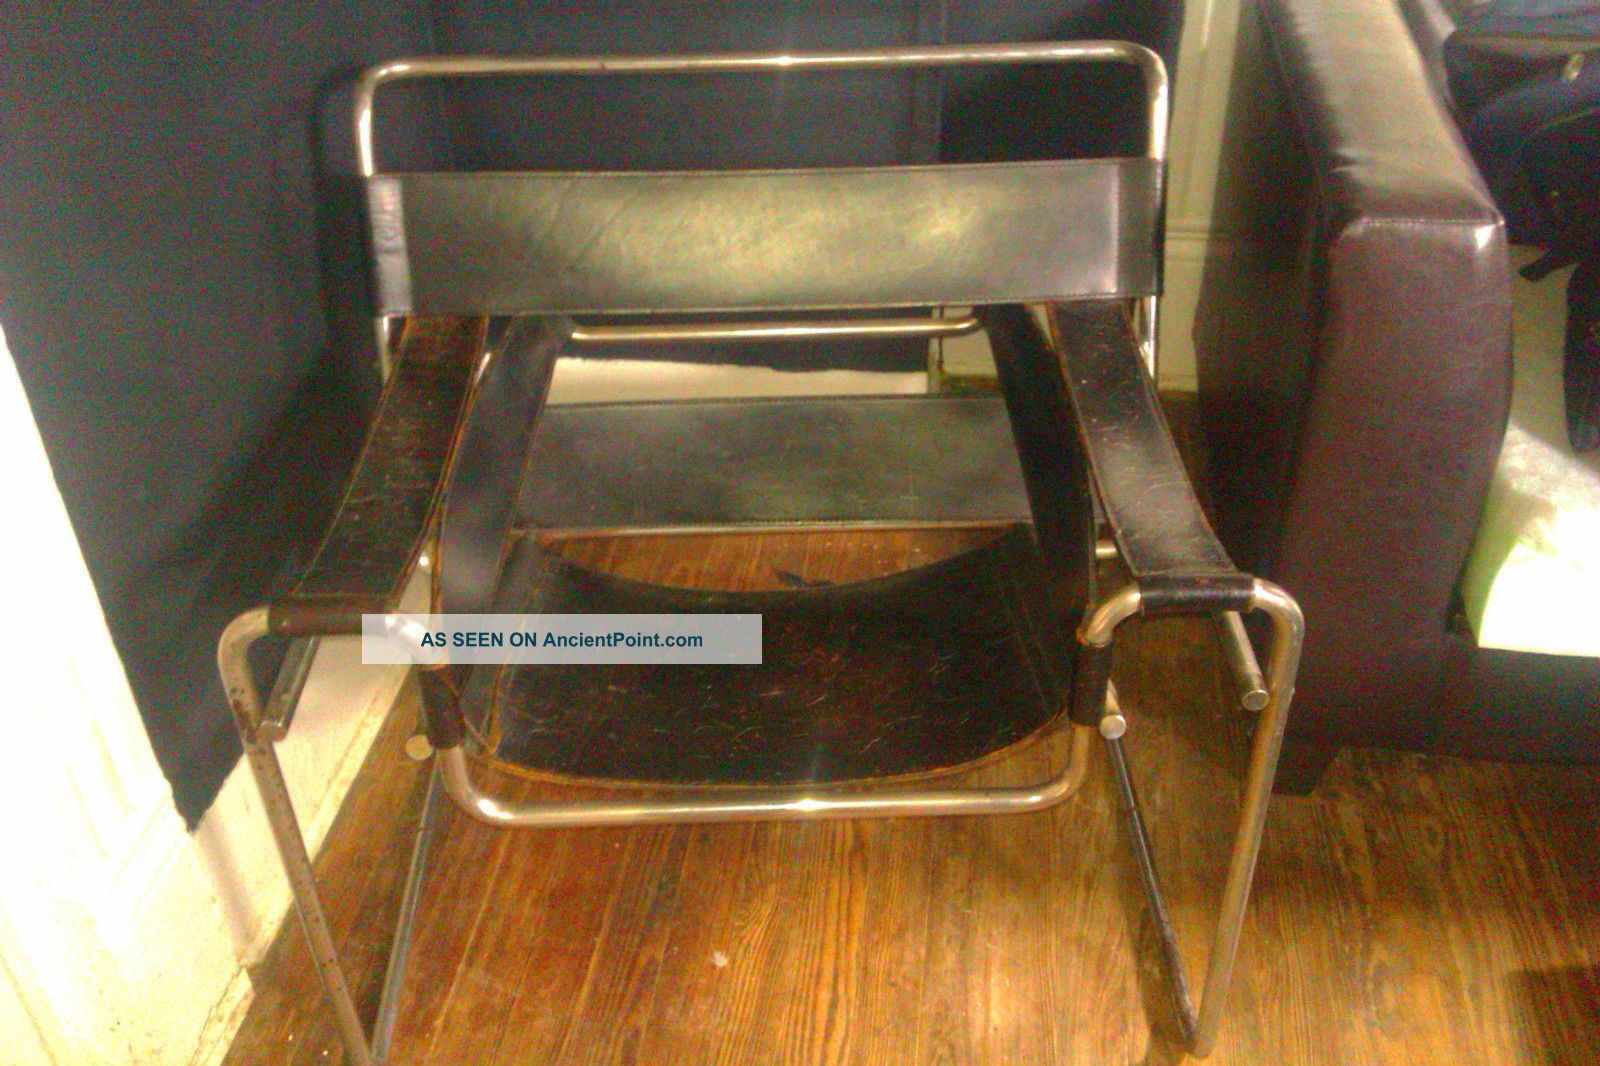 Knoll wassily chair black leather metal lounge vintage post 1950 photo